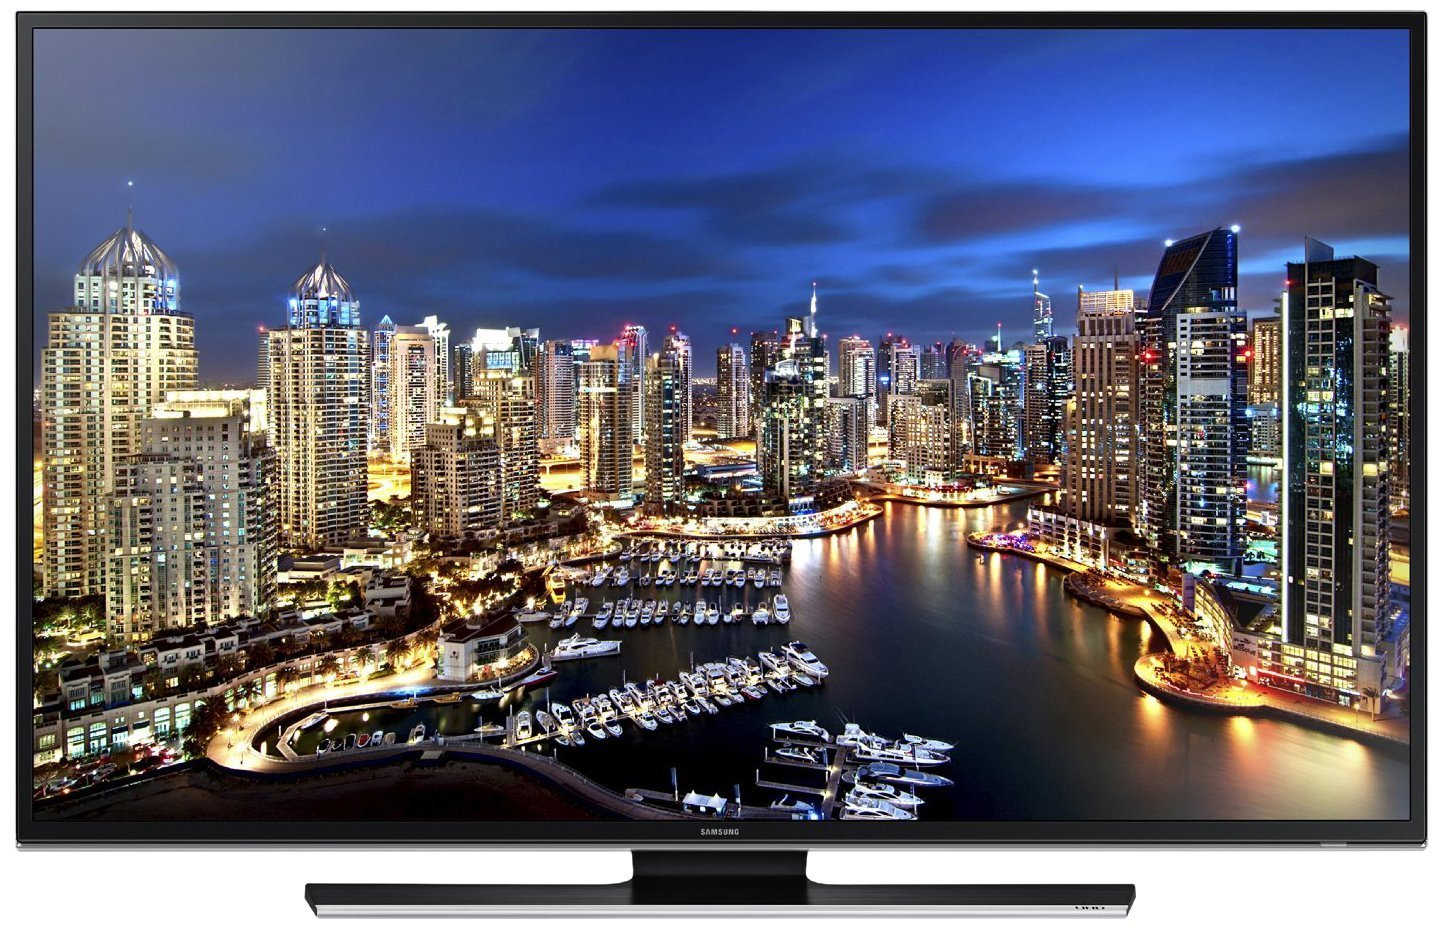 Samsung UN50HU6900F 50-Inch 4K Ultra HD 120Hz Smart LED TV (Refurbished)